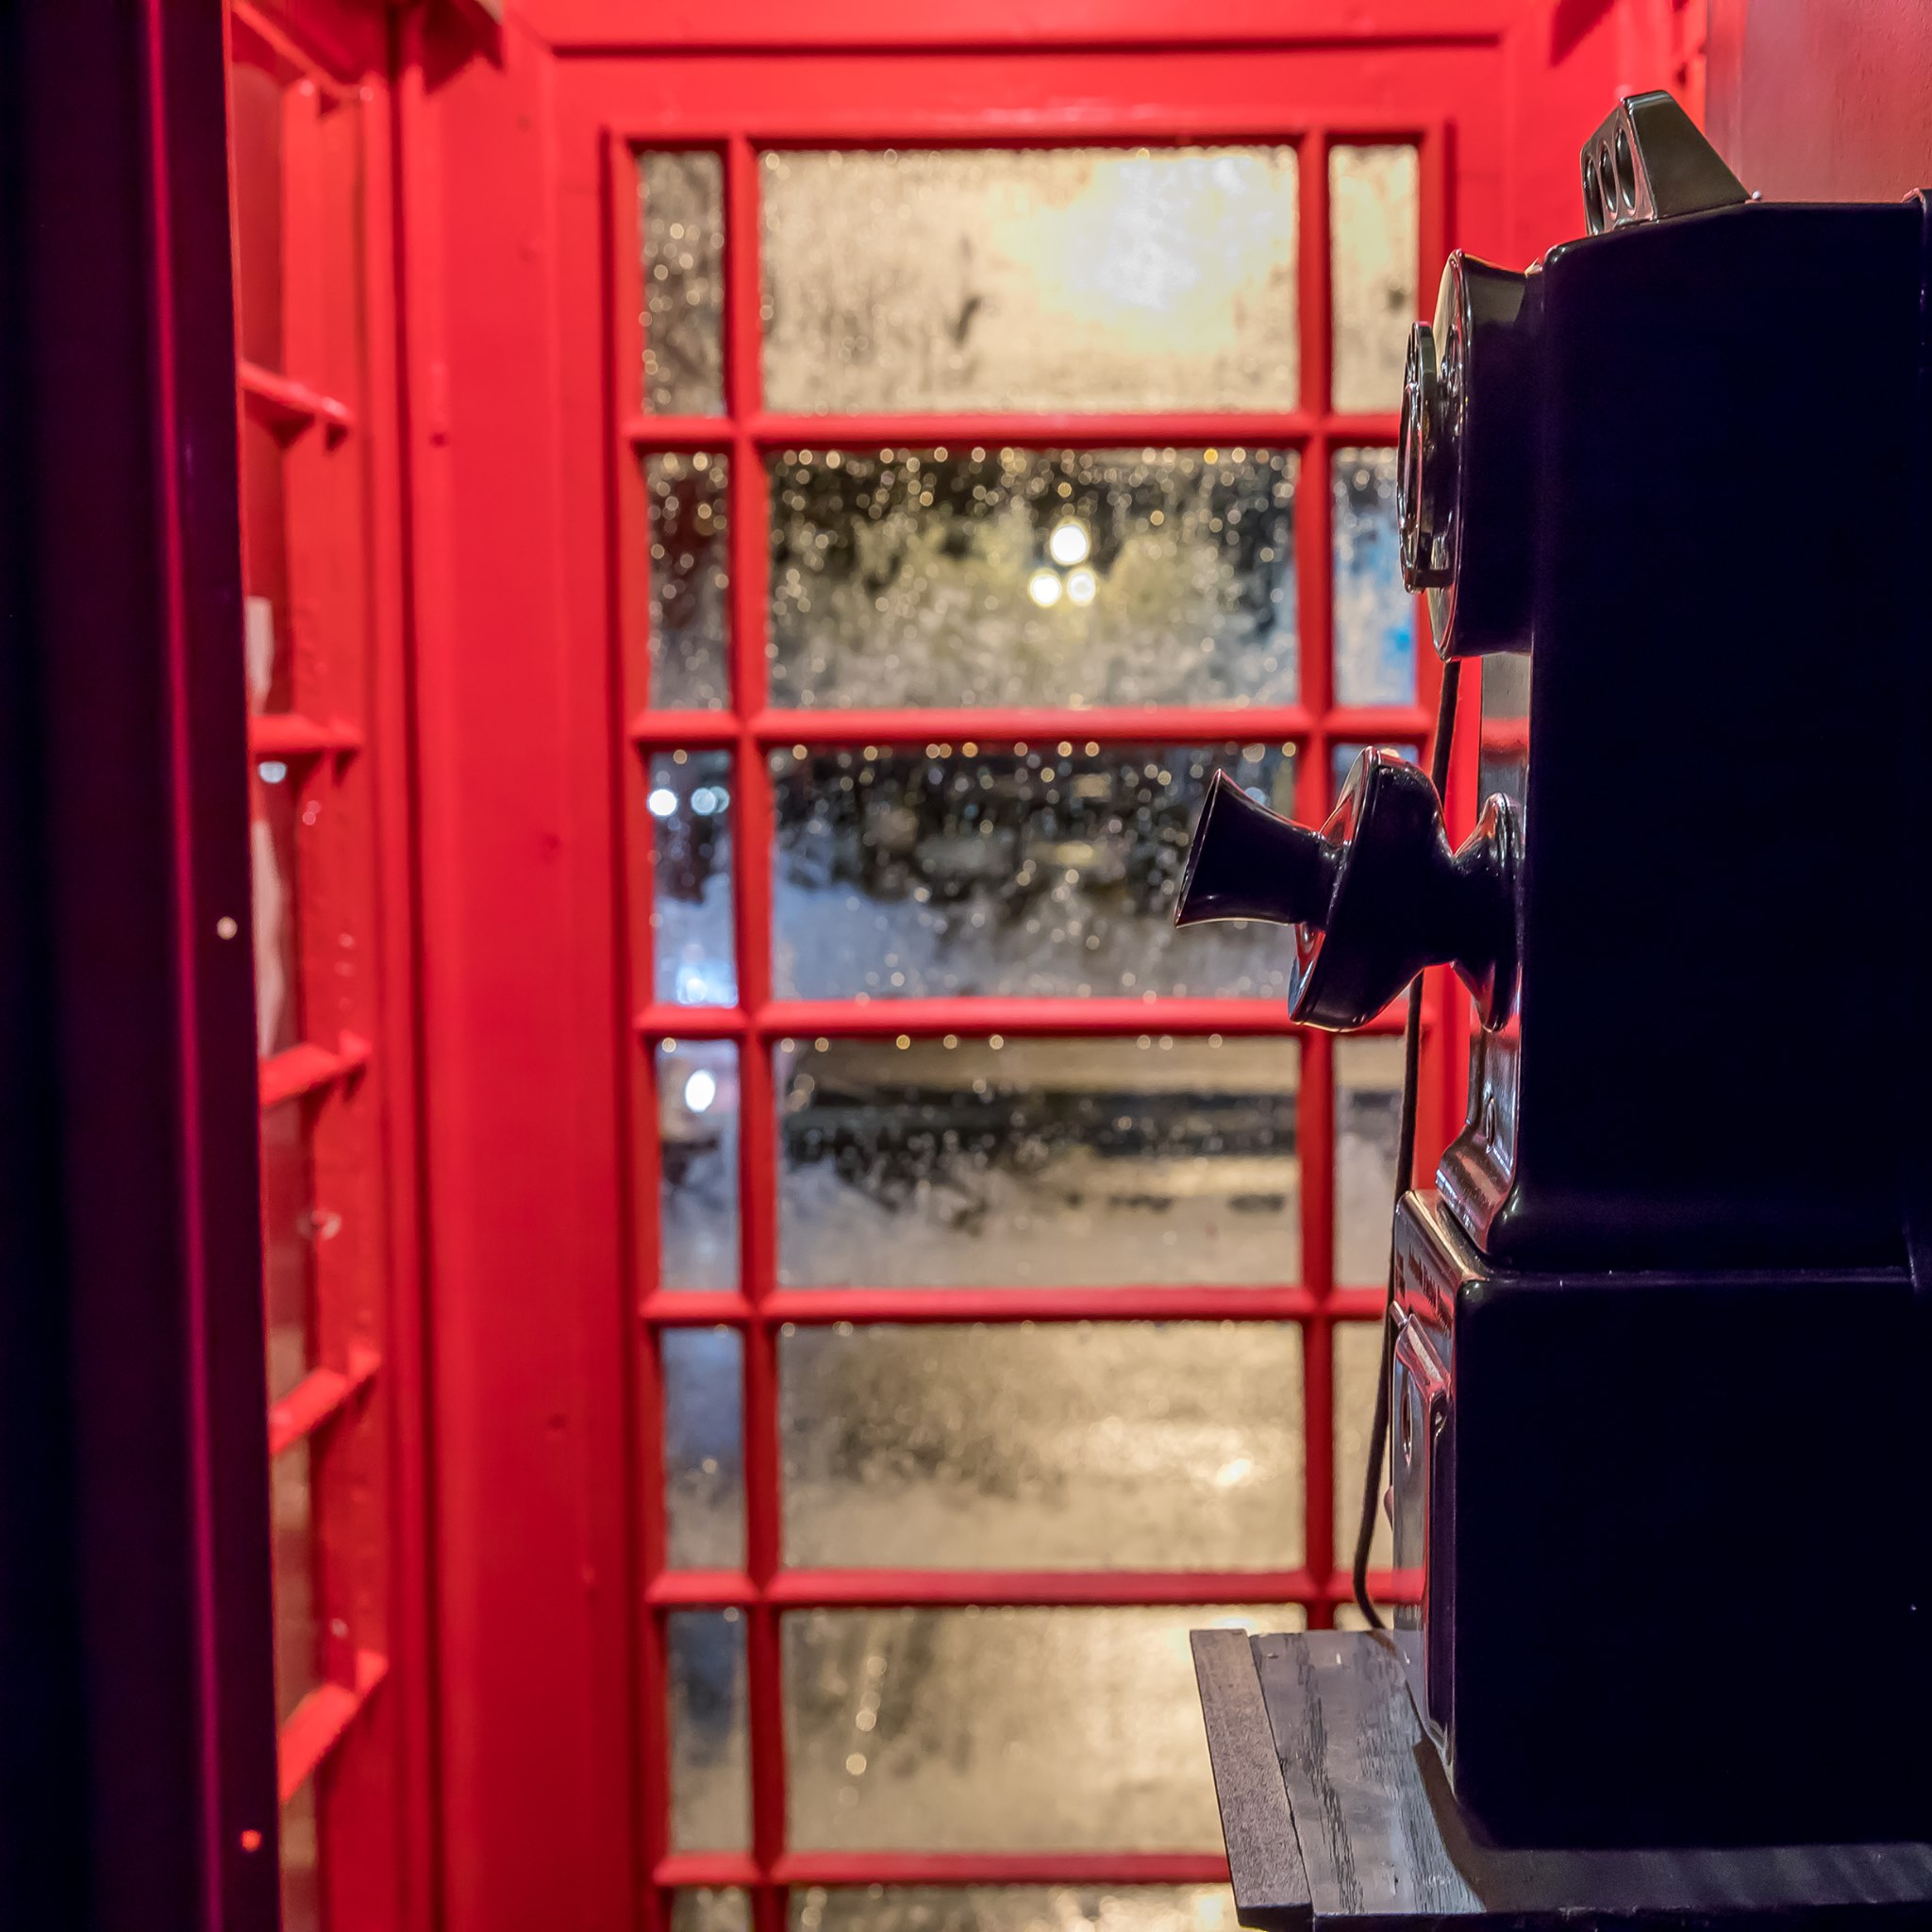 An old fashioned black telephone sits inside an red antique British phone booth as rain drops trickle down the closed glass door